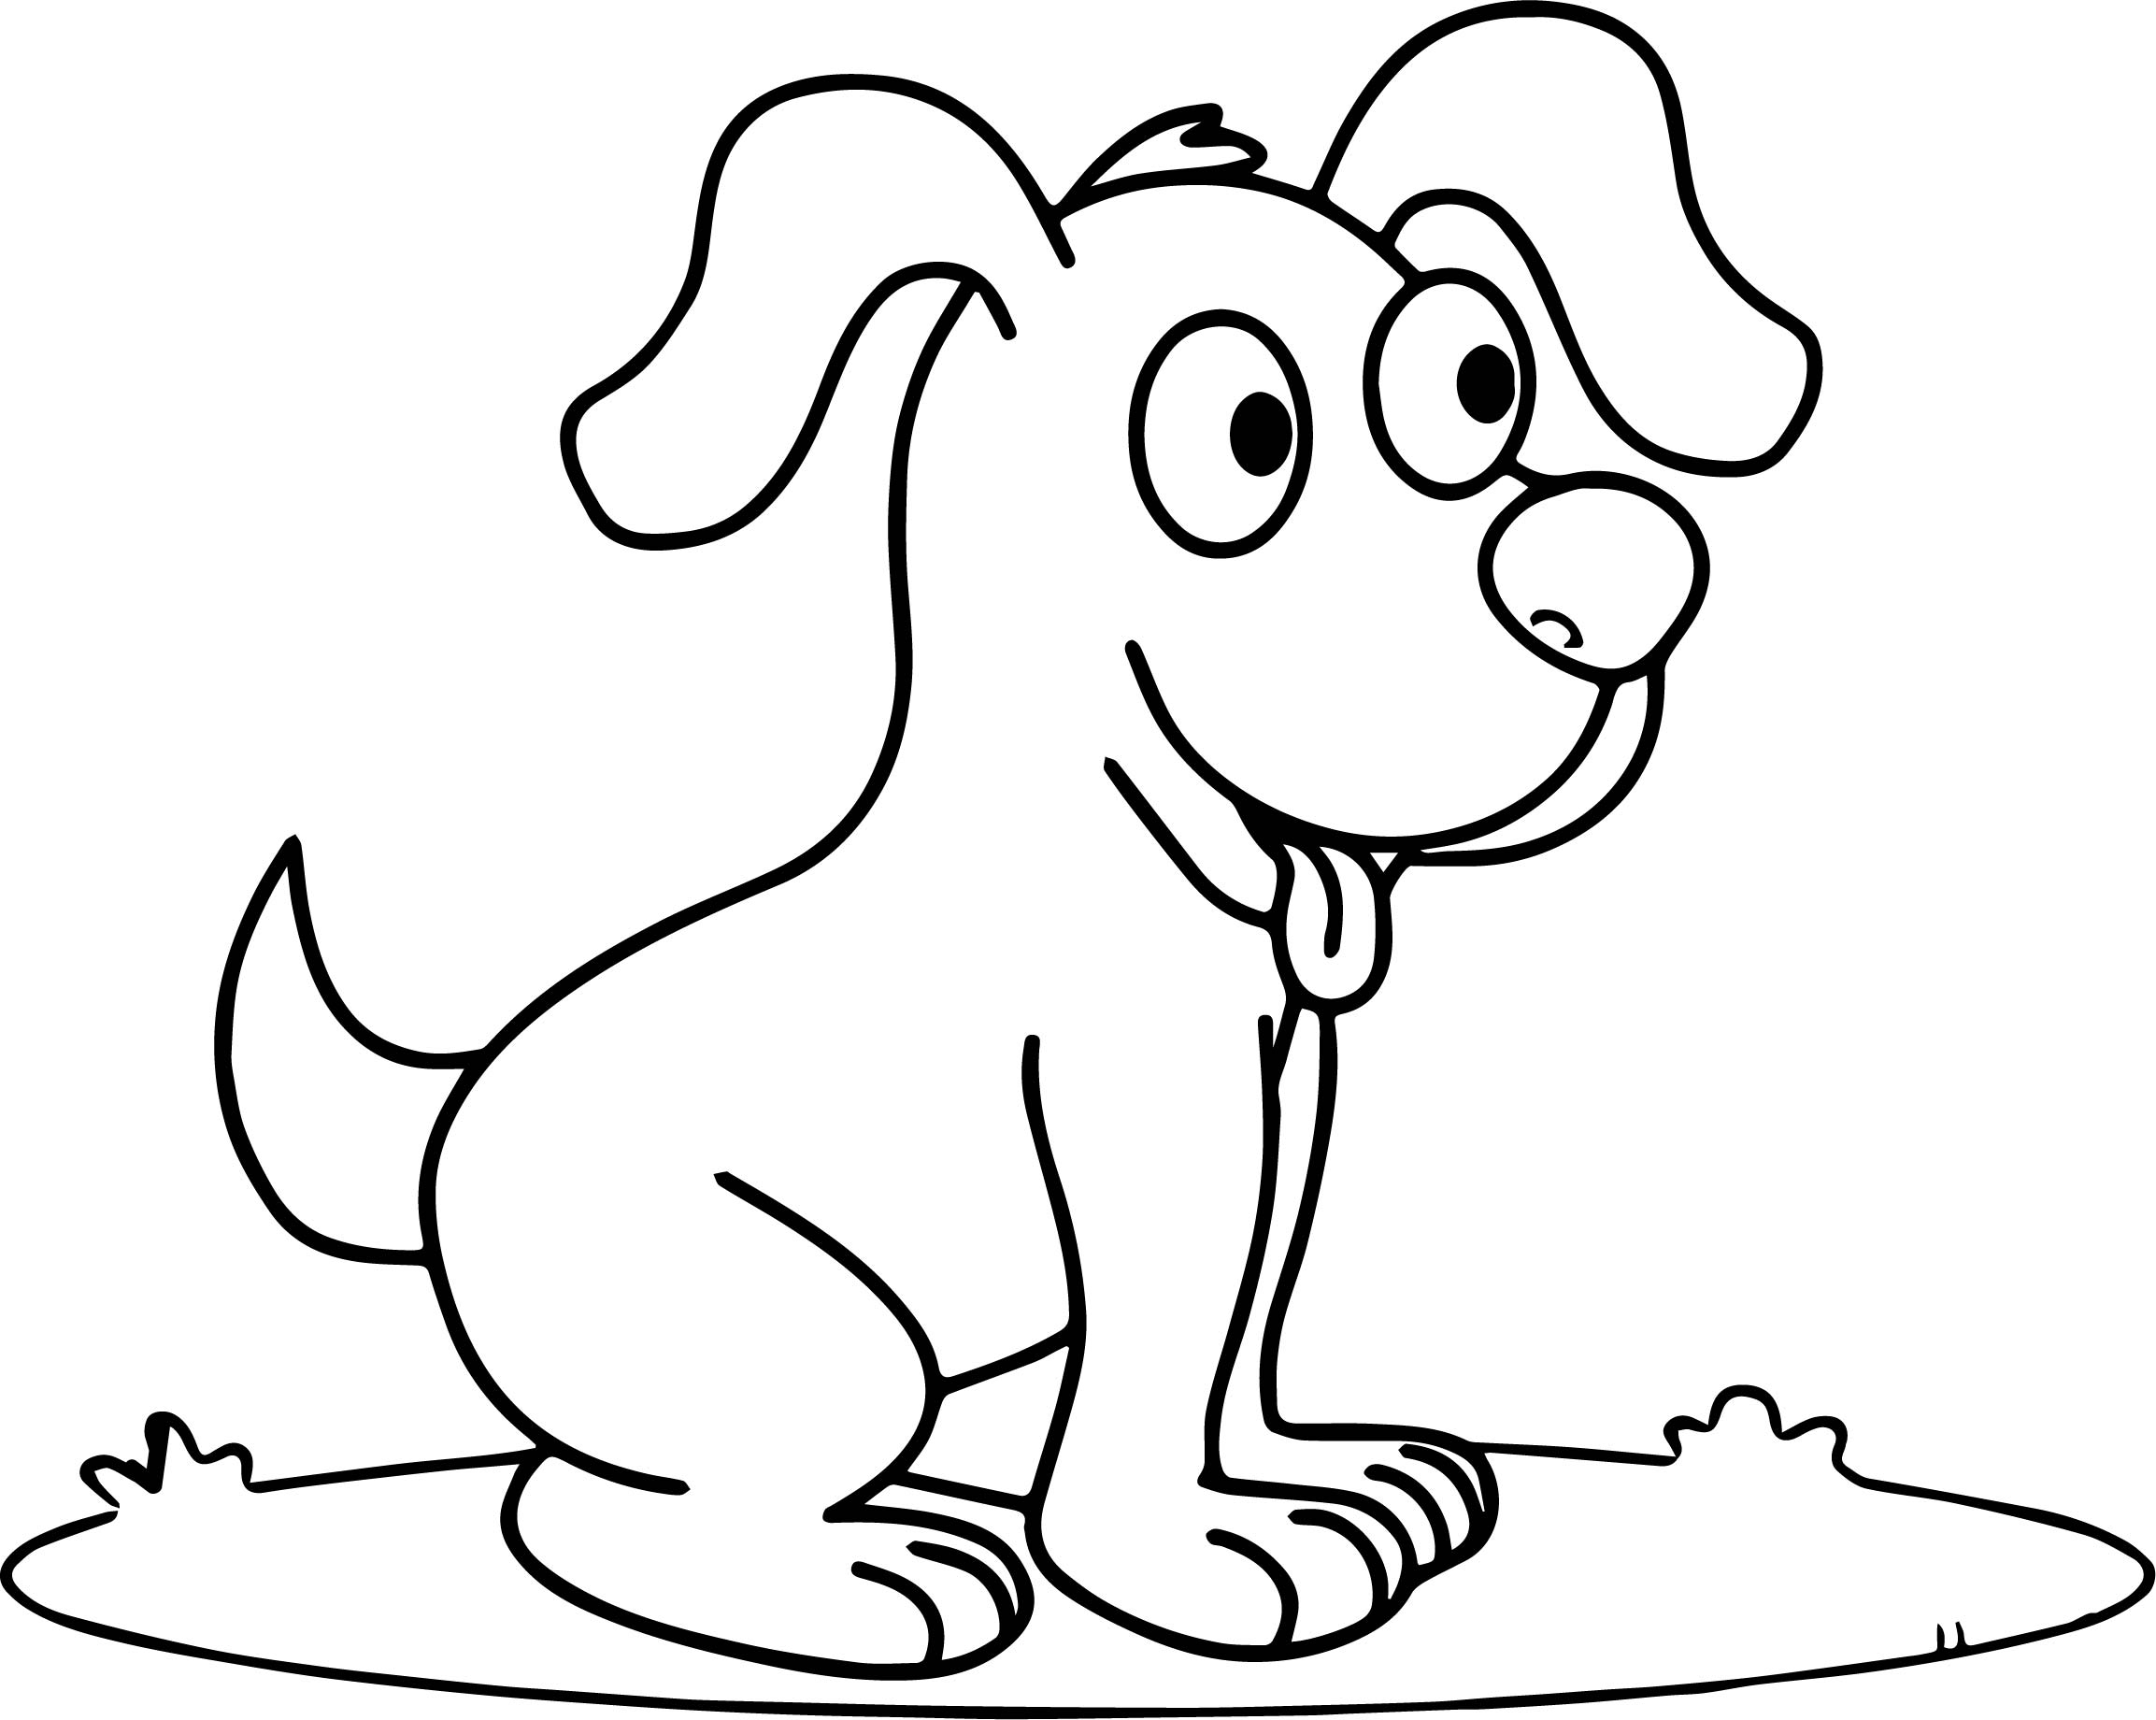 2307x1840 Fresh Cartoon Dogs Coloring Pages Collection Printable Coloring